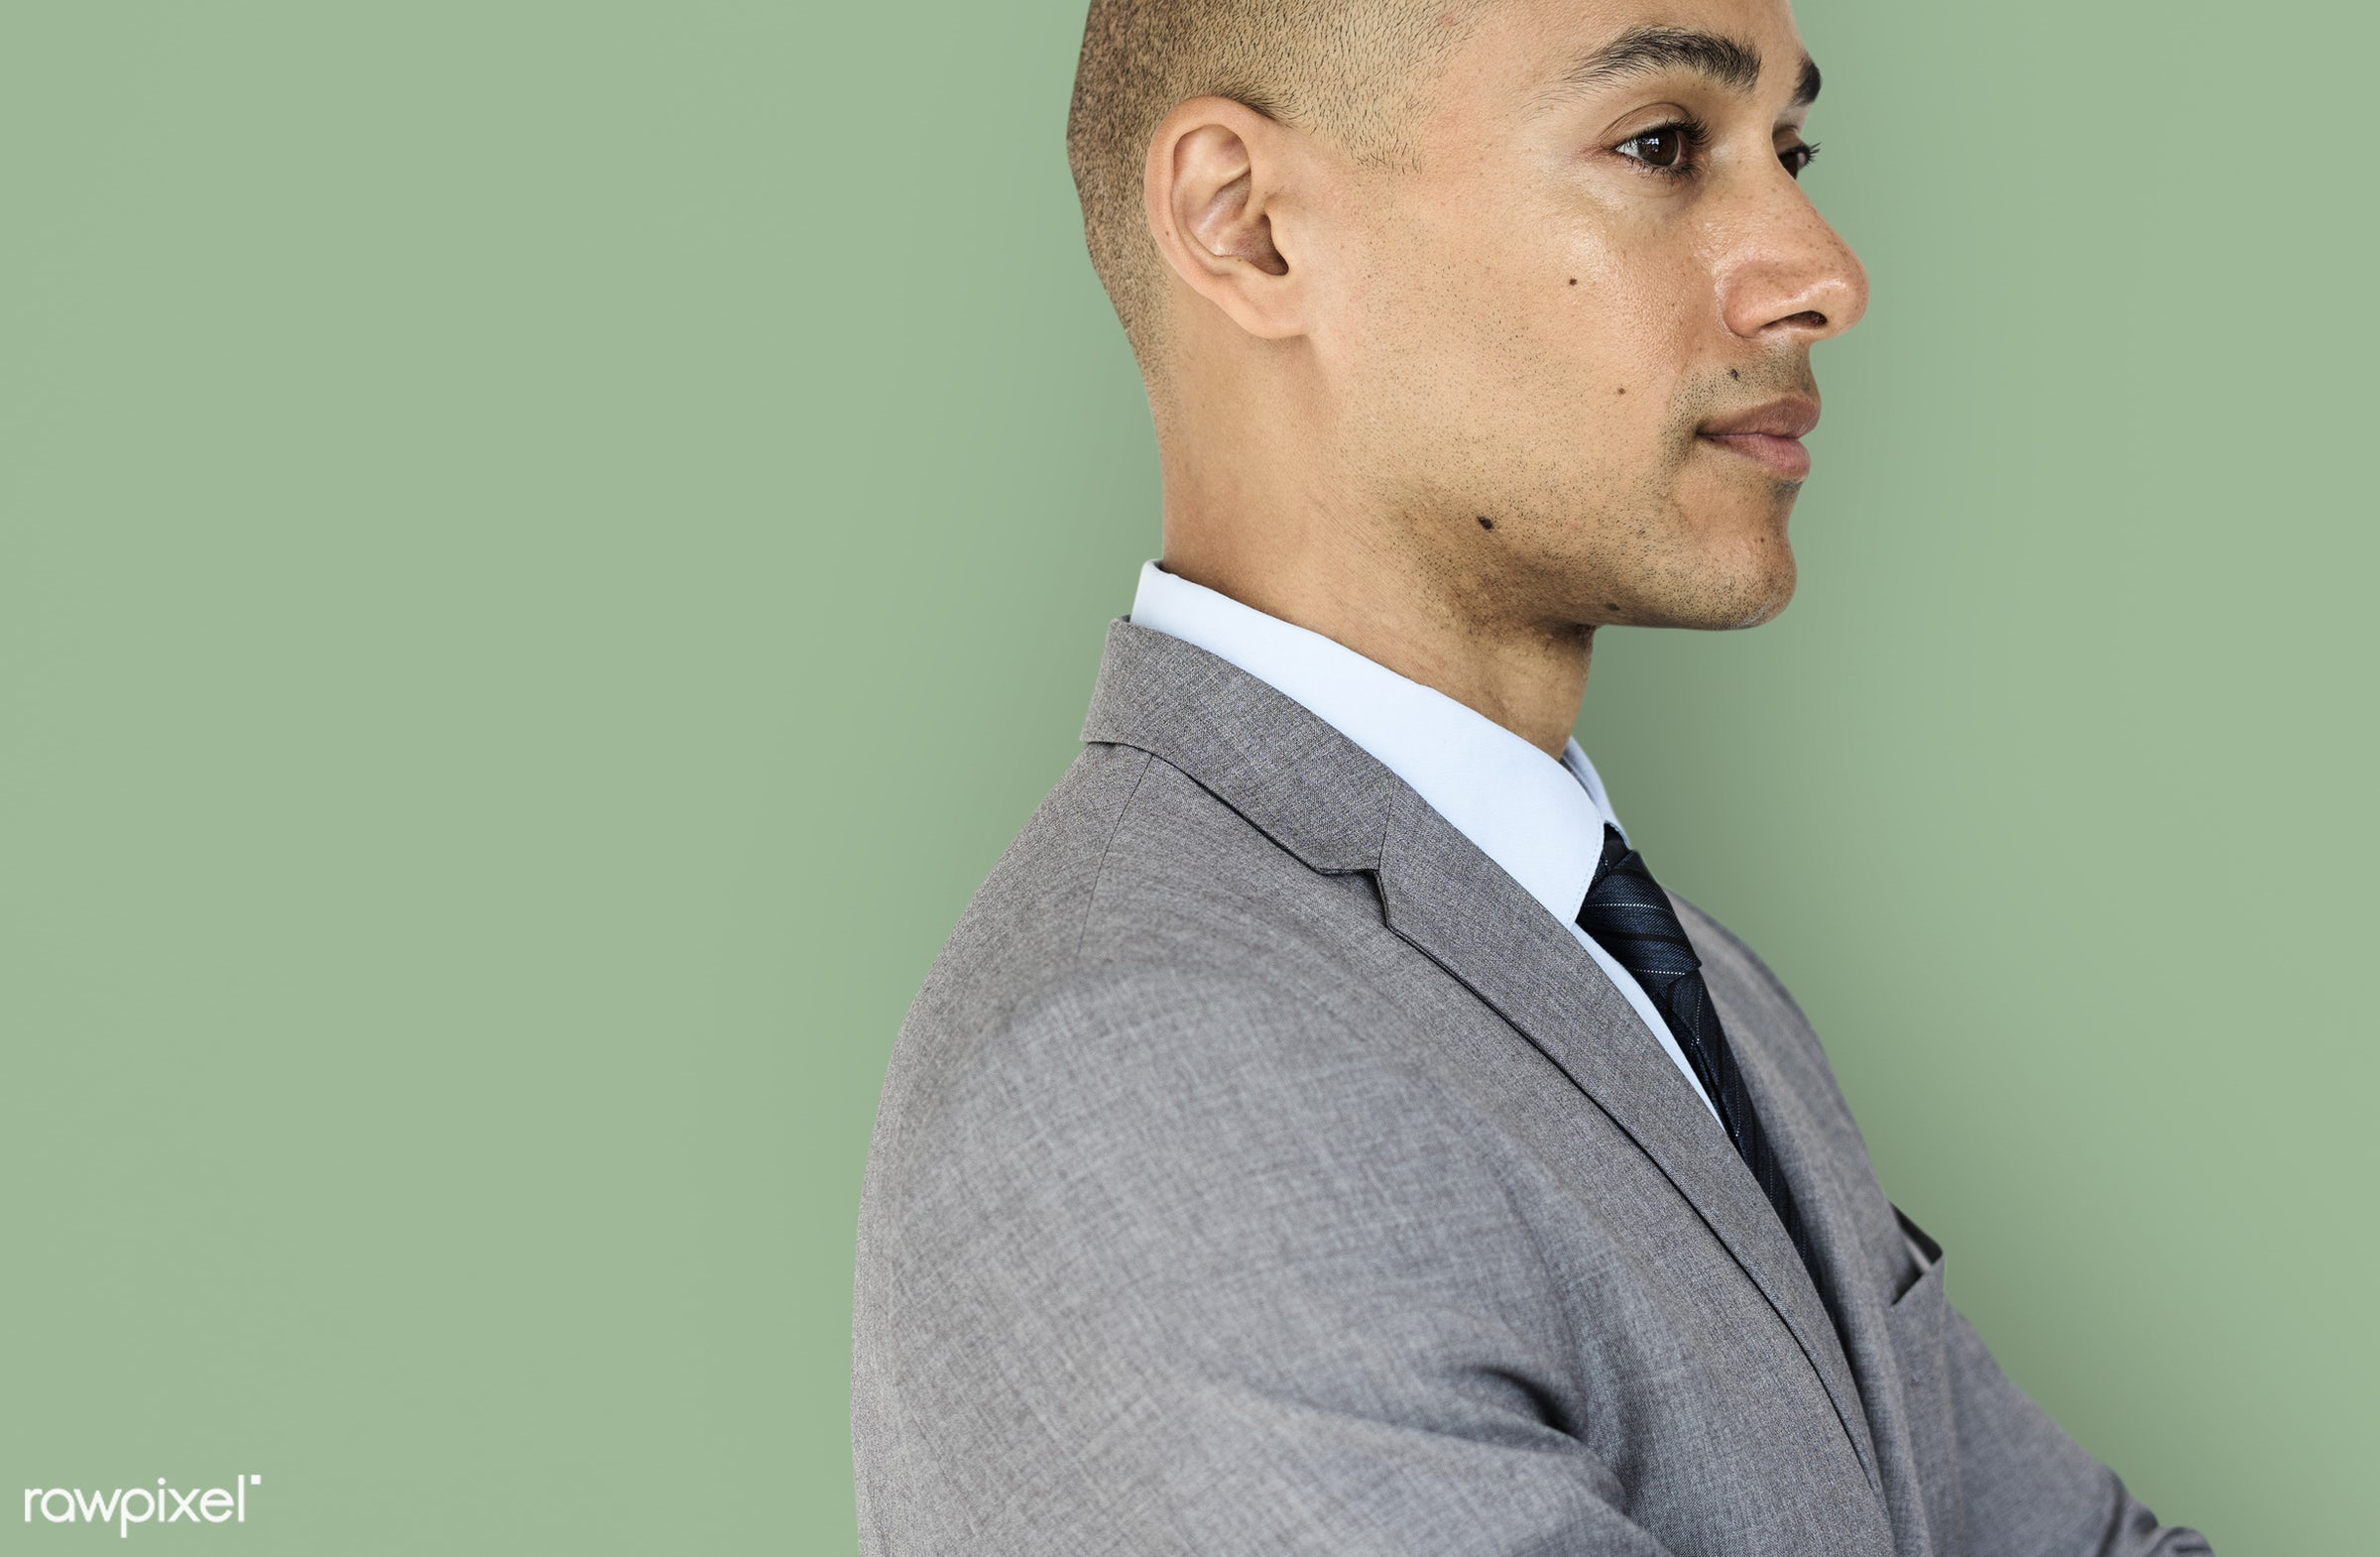 expression, studio, person, business wear, side view, business dressing, people, formal dressing, business, caucasian, side...